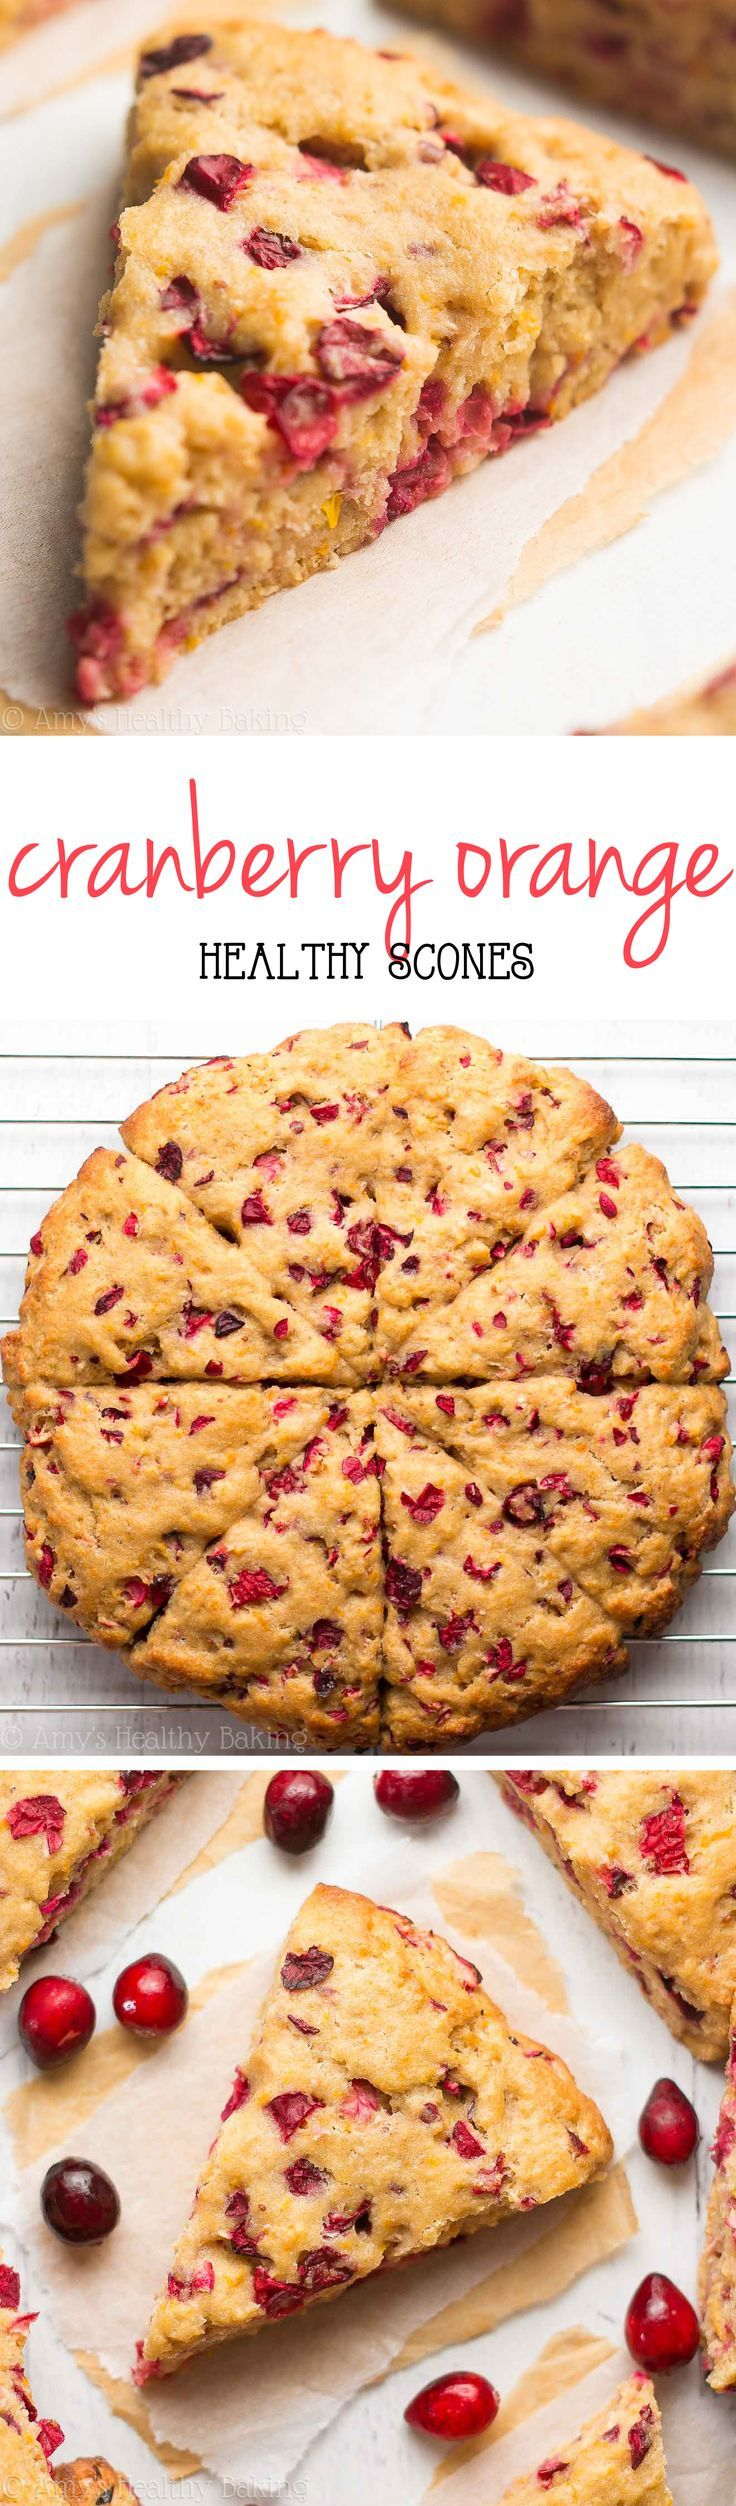 Healthy Cranberry Orange Scones -- so tender & ready in 30 minutes! Nearly 5g of protein too!